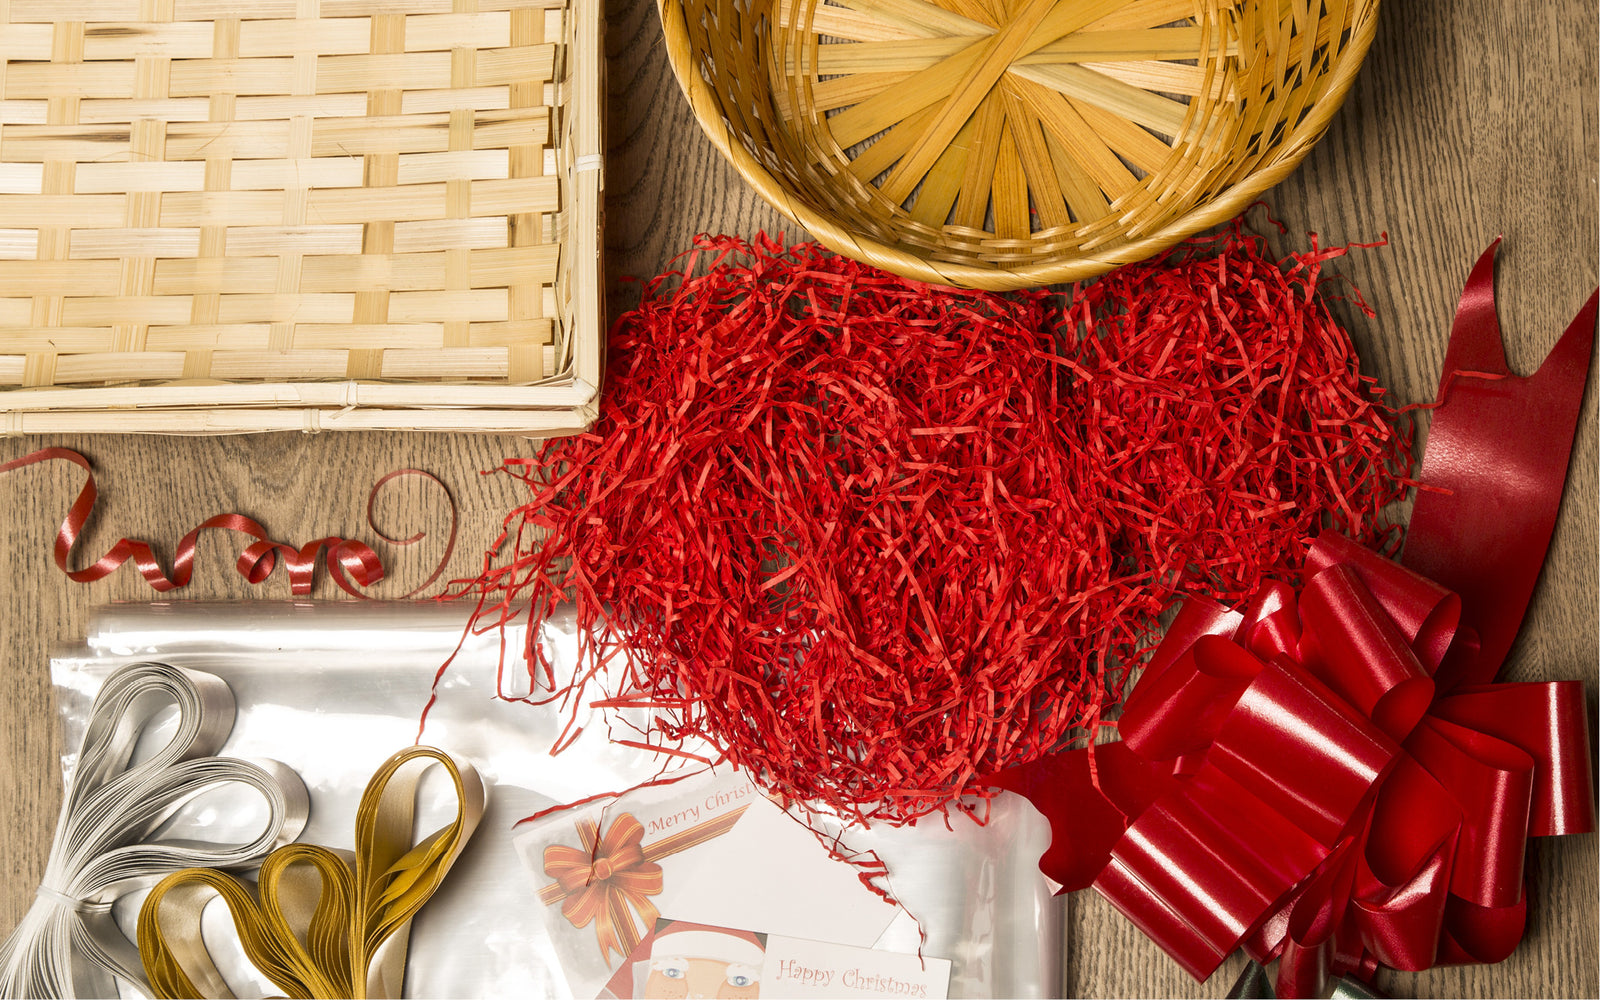 Image of gift baskets, shred, bows and gift cards